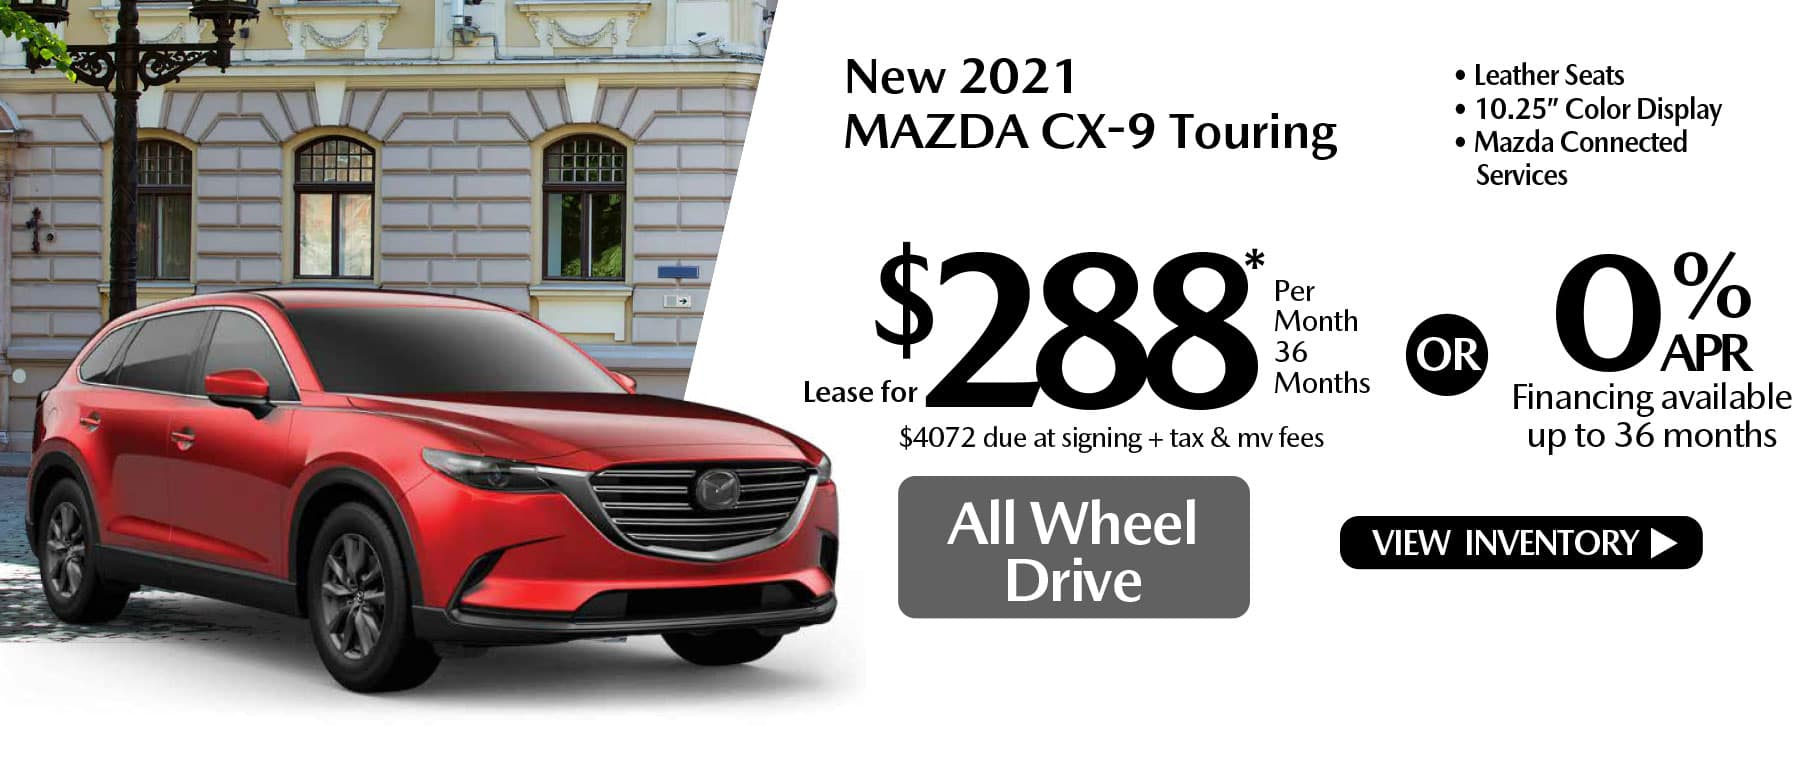 hi CX-9 New Lease Special Offer Mazda of New Rochelle NY